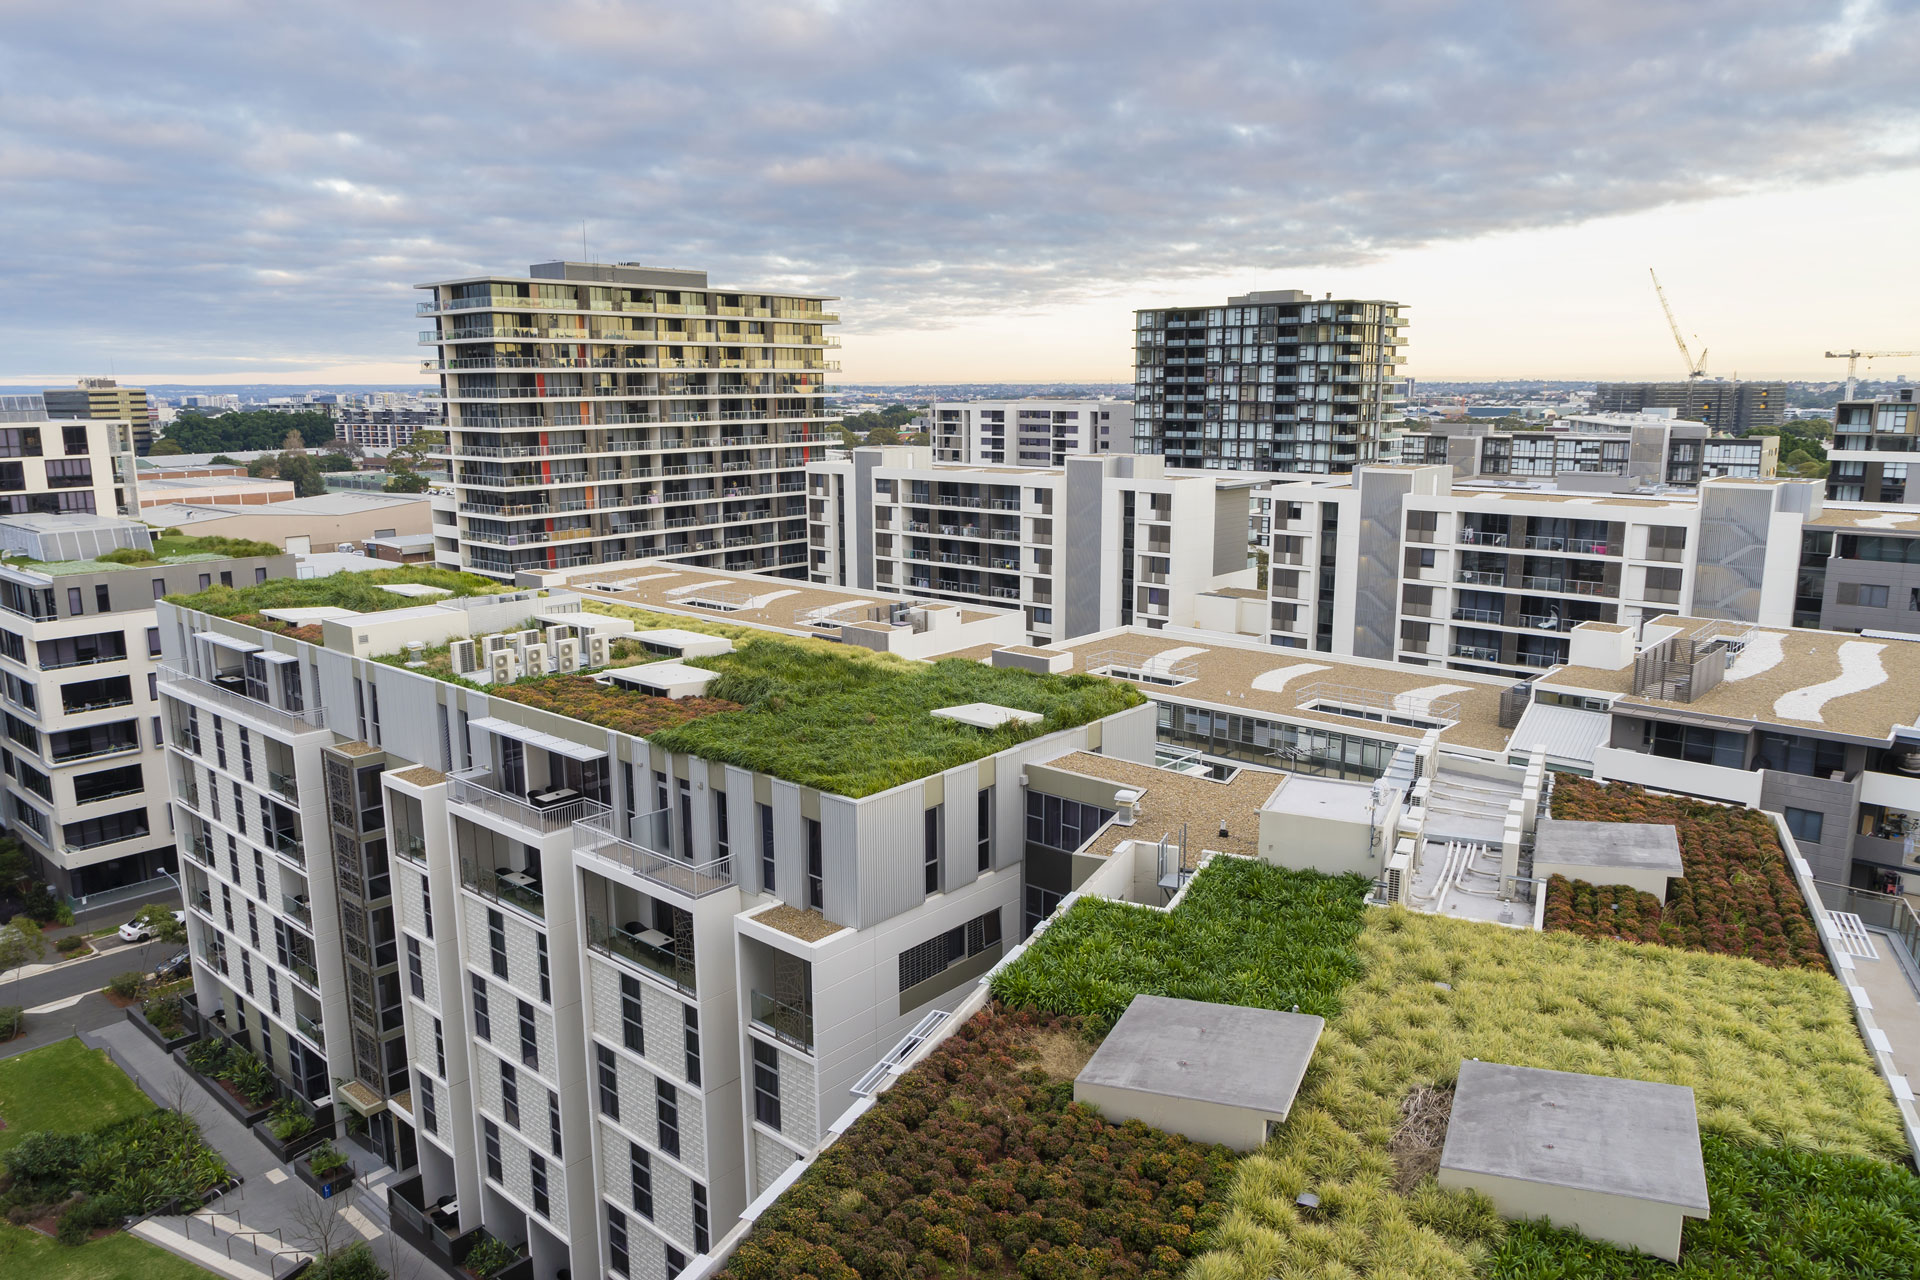 Insulation for green roofs